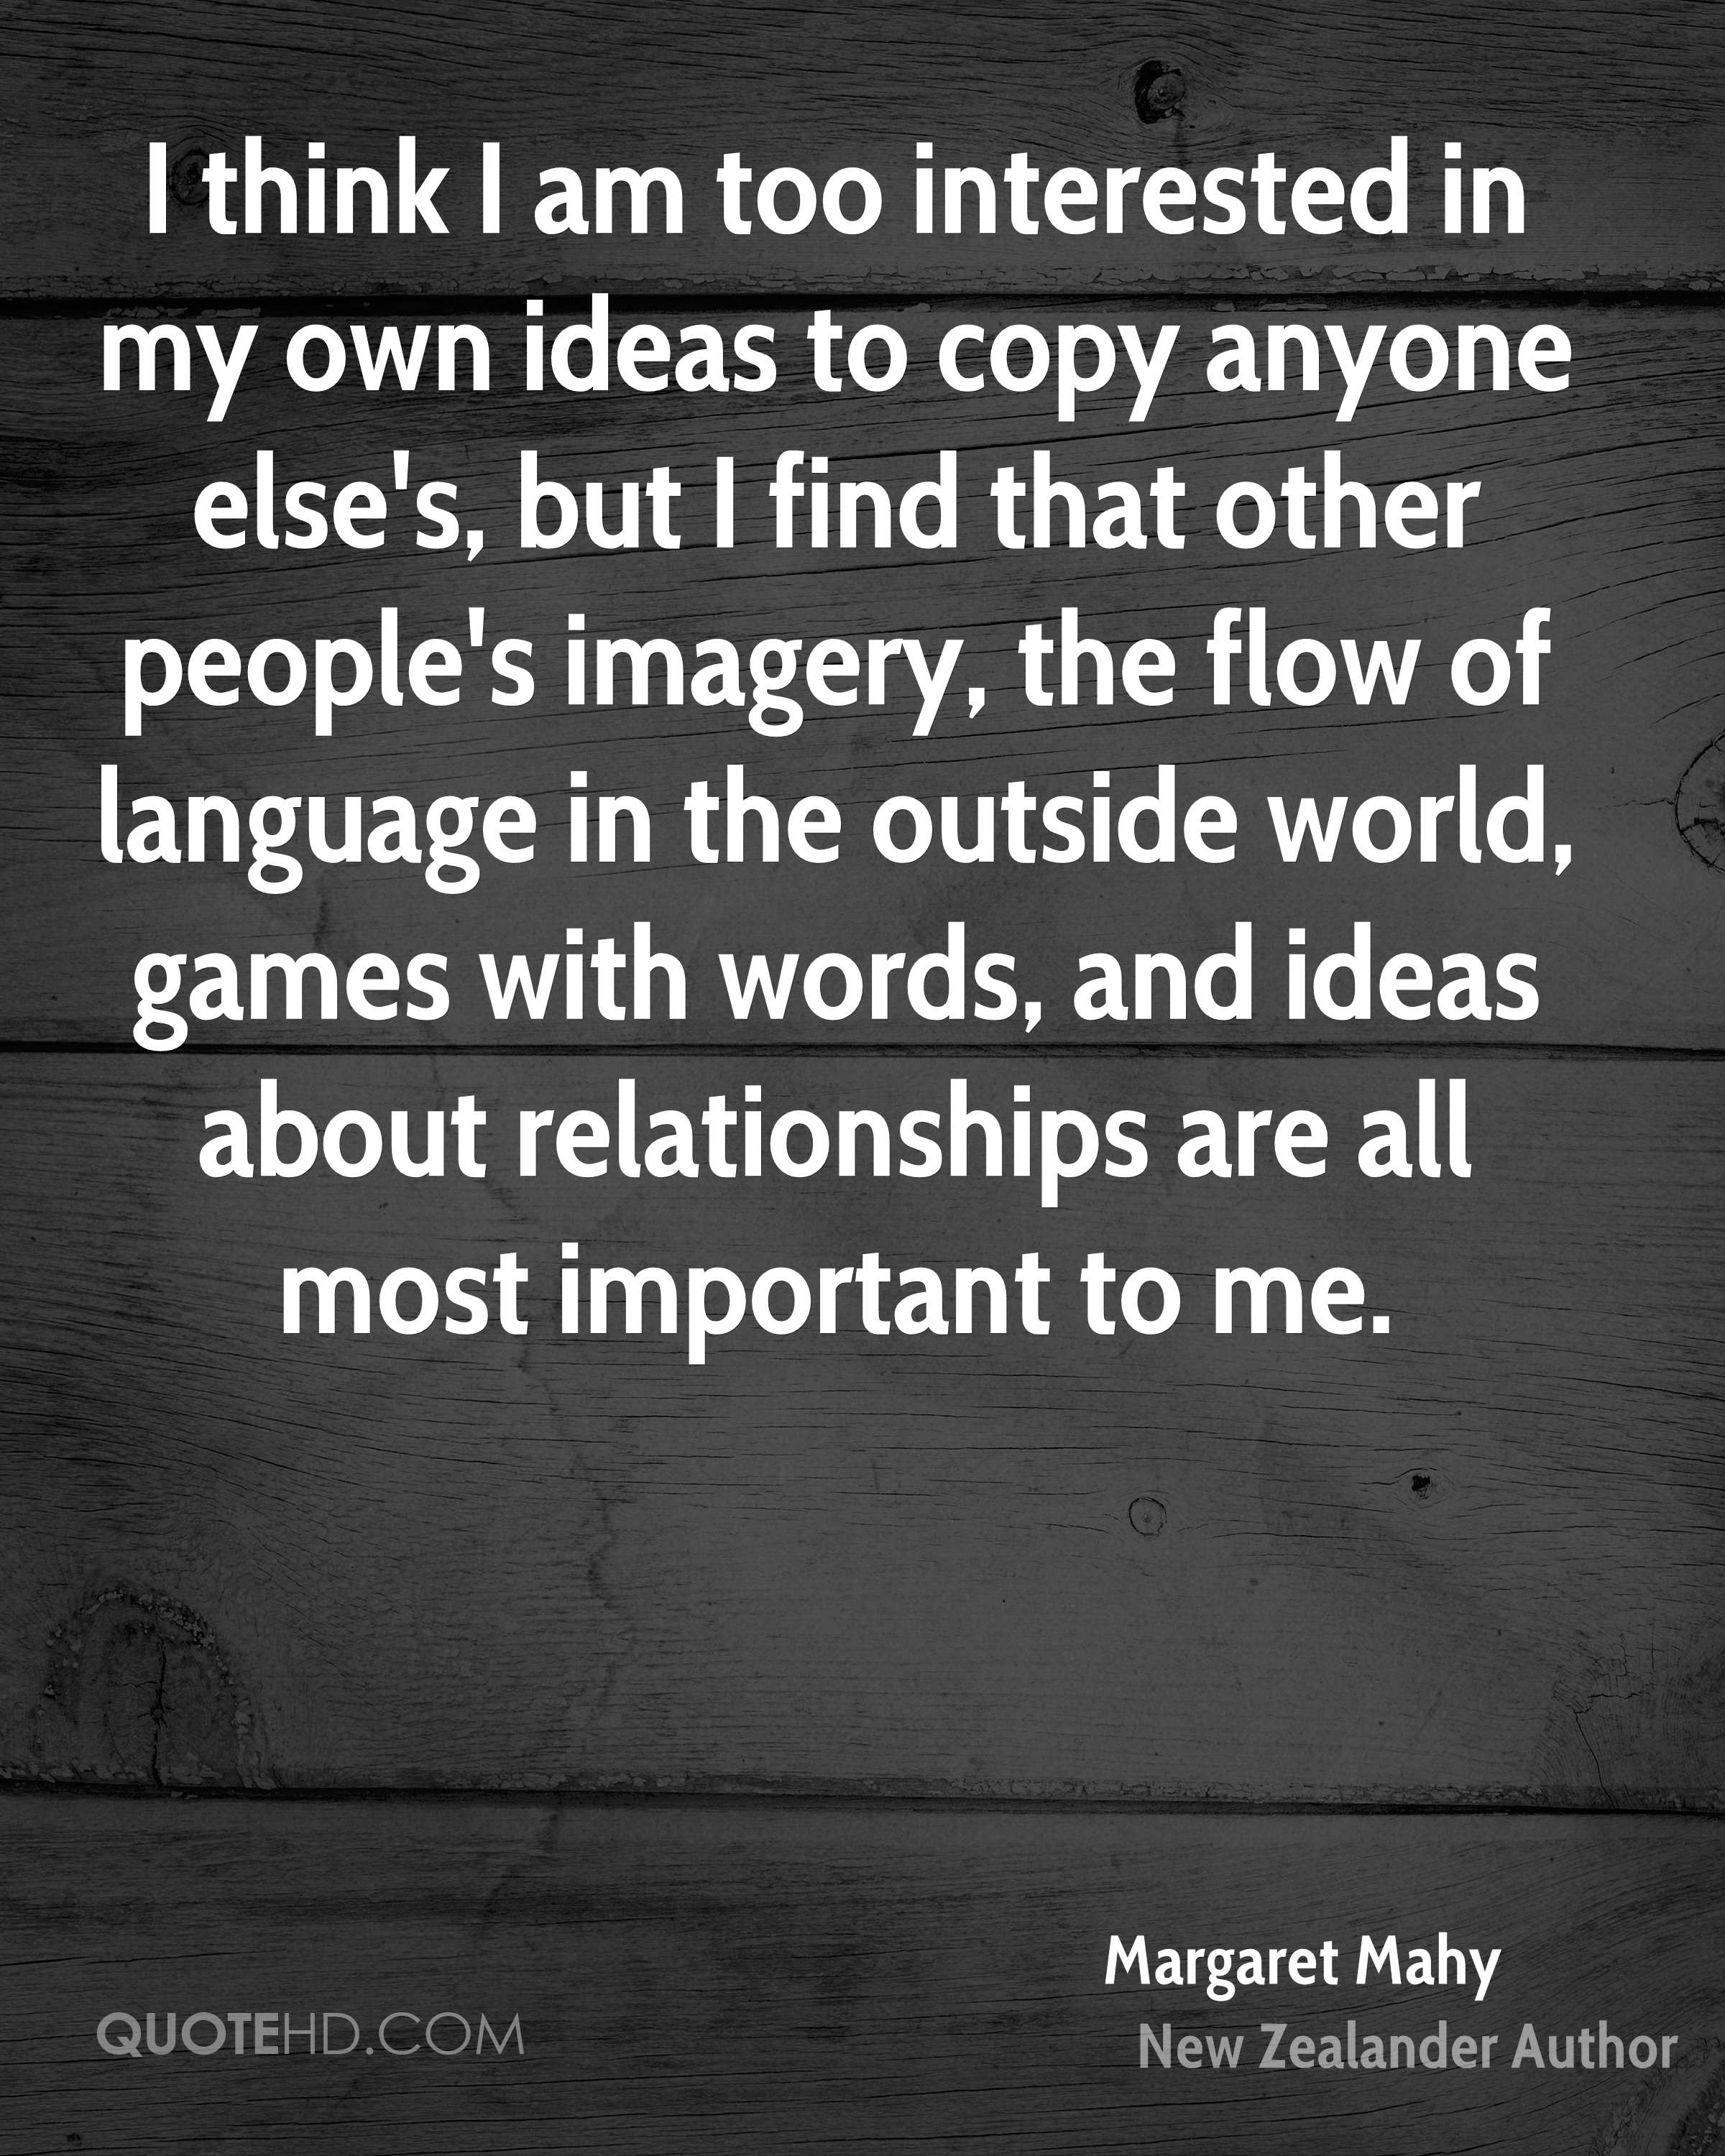 I think I am too interested in my own ideas to copy anyone else's, but I find that other people's imagery, the flow of language in the outside world, games with words, and ideas about relationships are all most important to me.